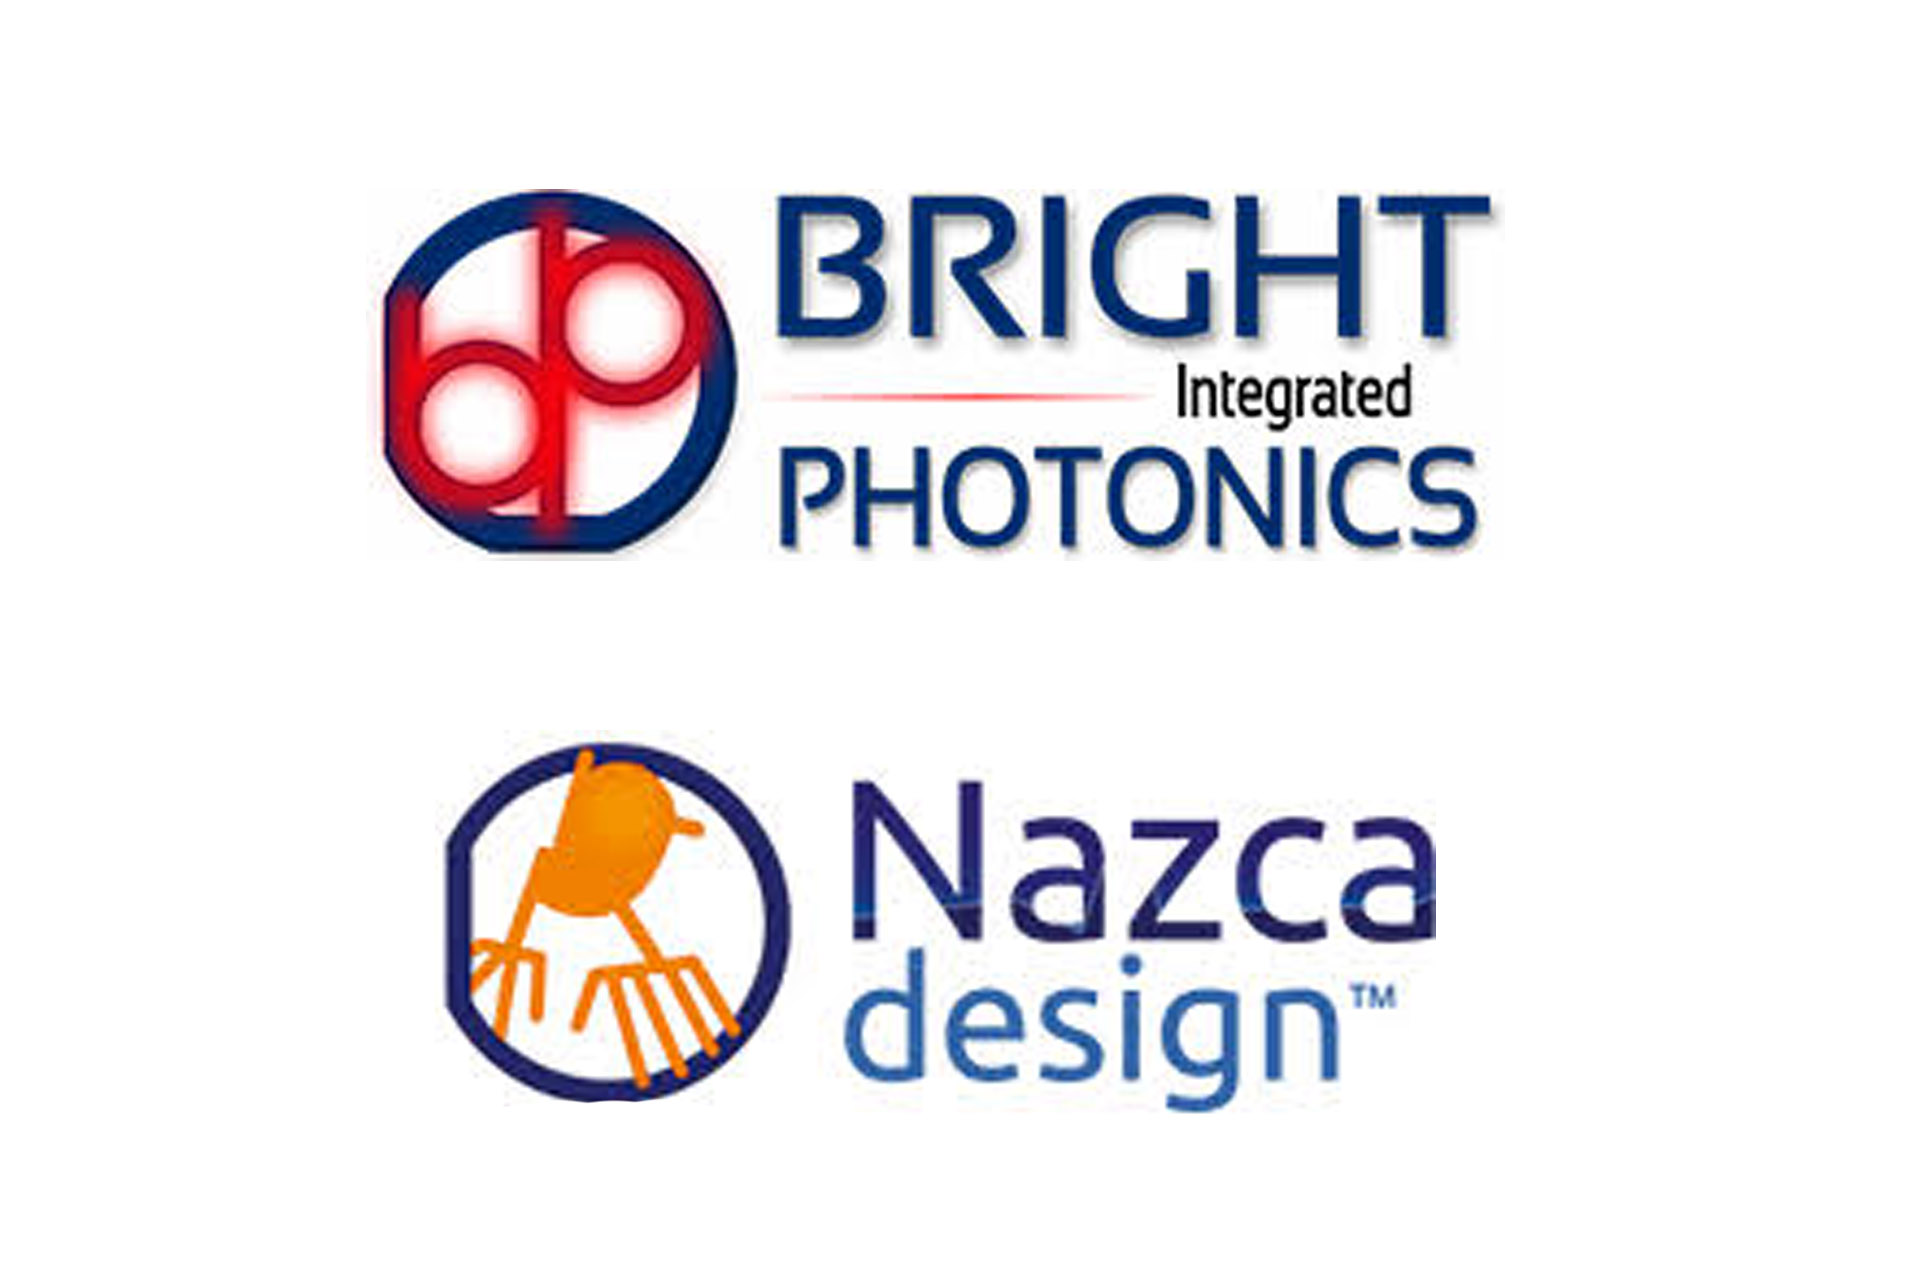 BRIGHT Photonics & NAZCA